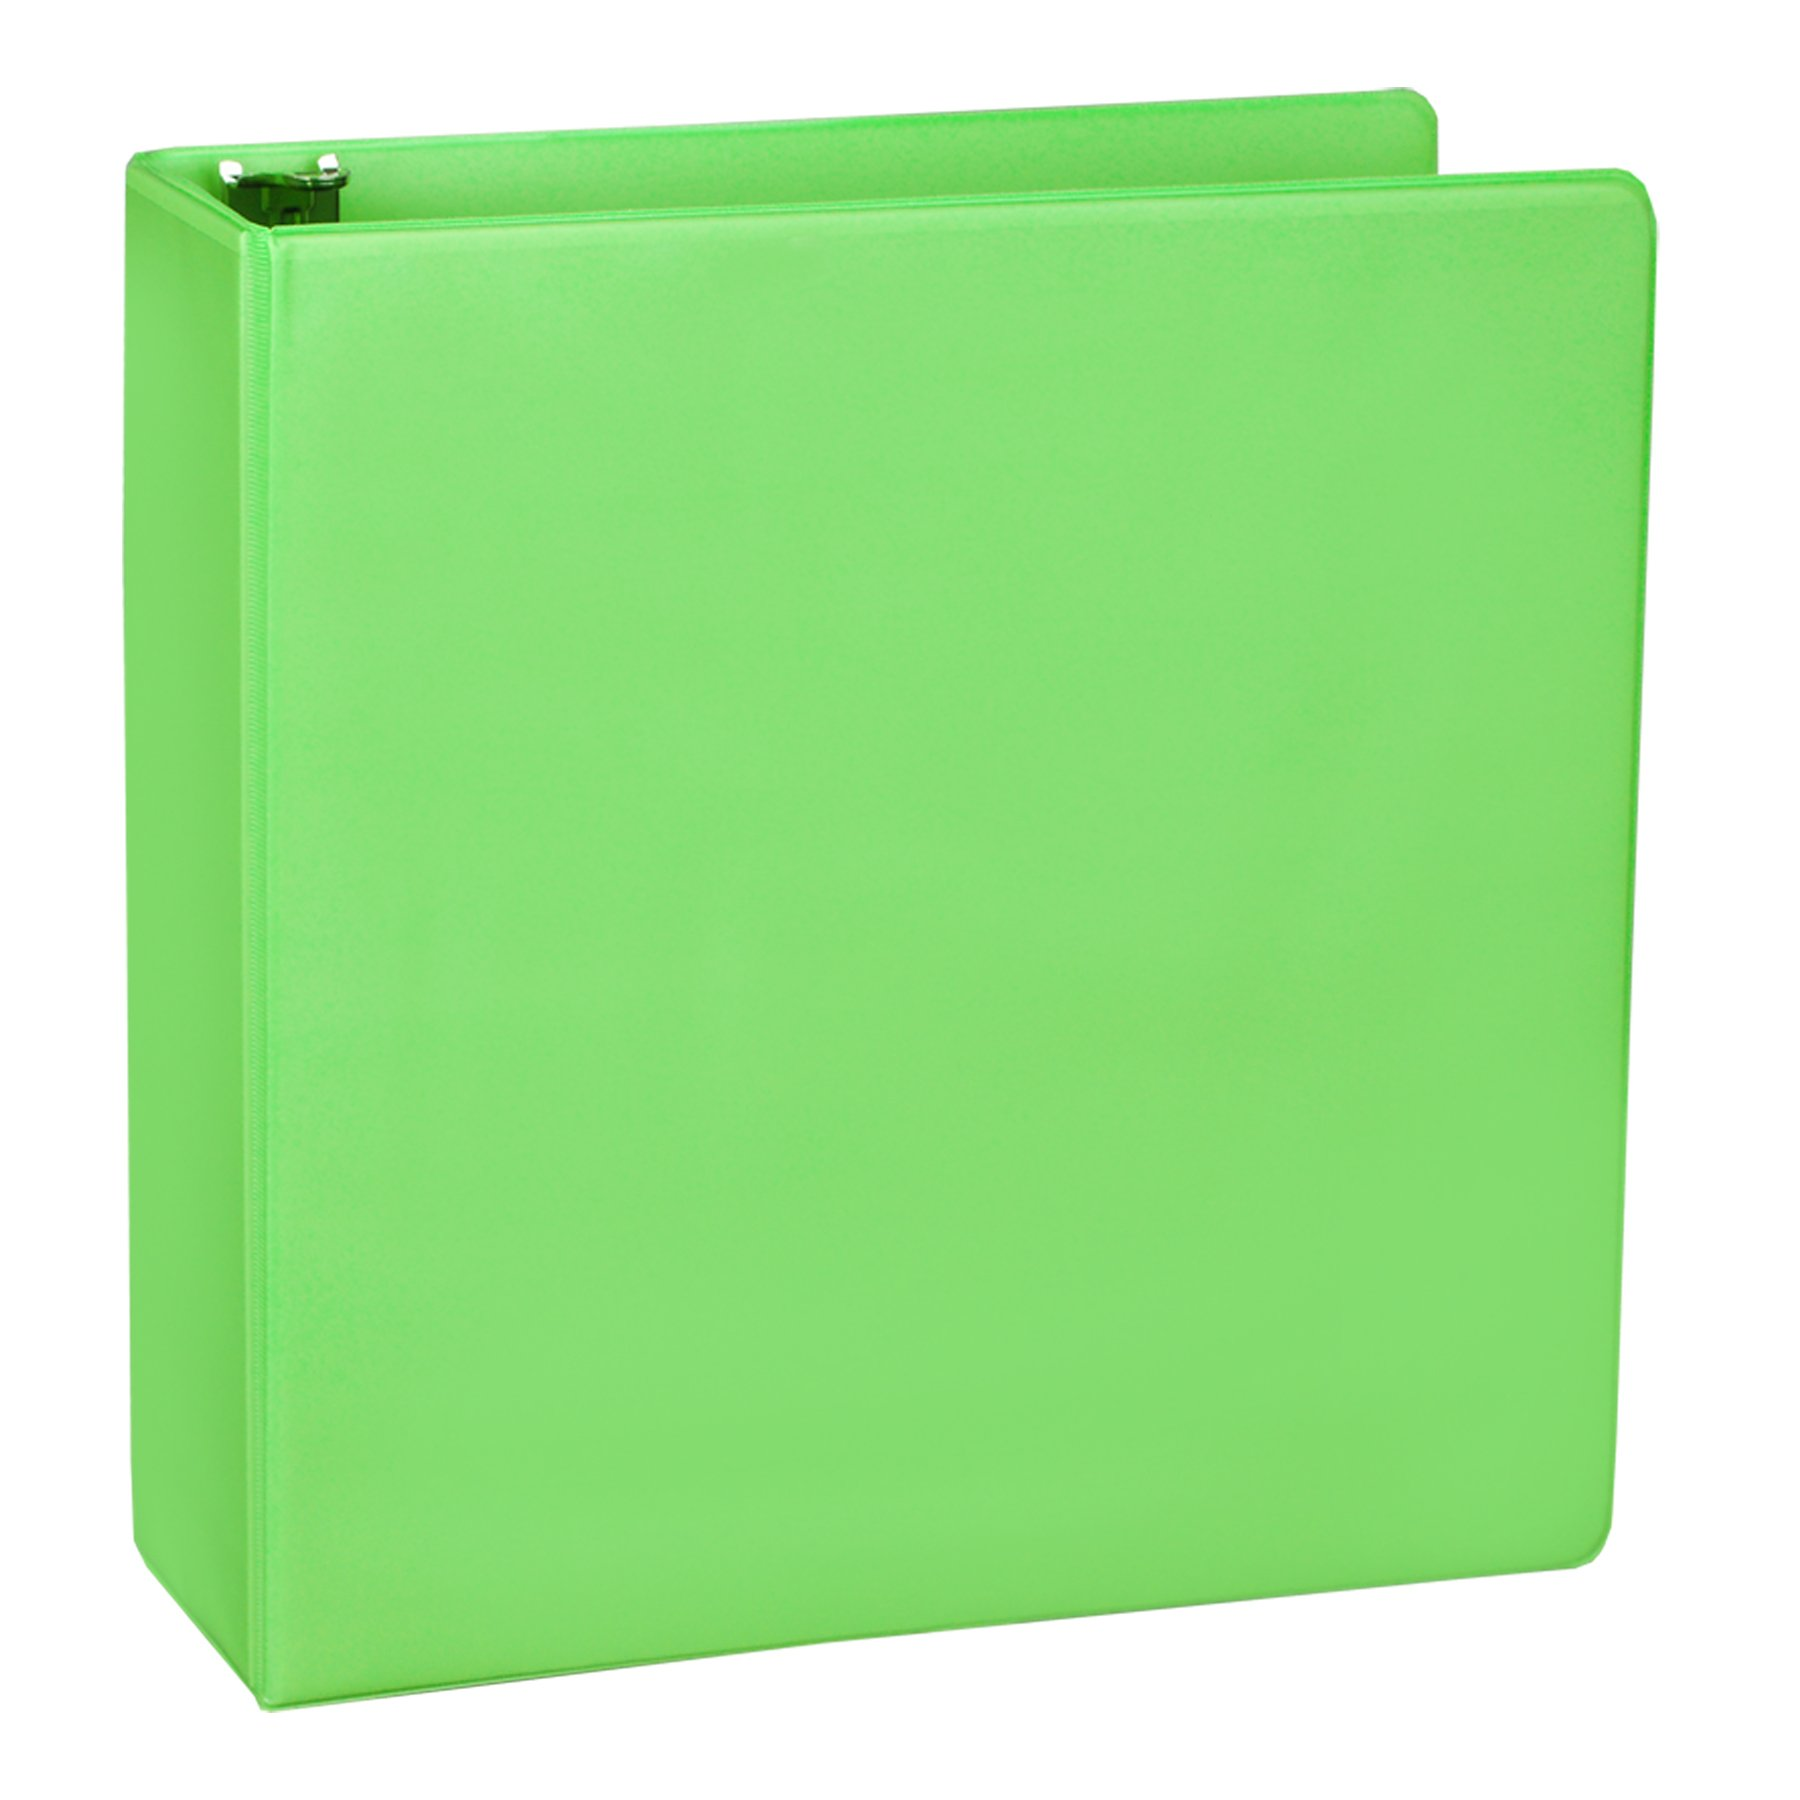 Samsill Fashion Color Durable 3 Ring View Binders, 2 Inch Round Ring, Customizable Clear View Cover, Lime Green, Two Pack